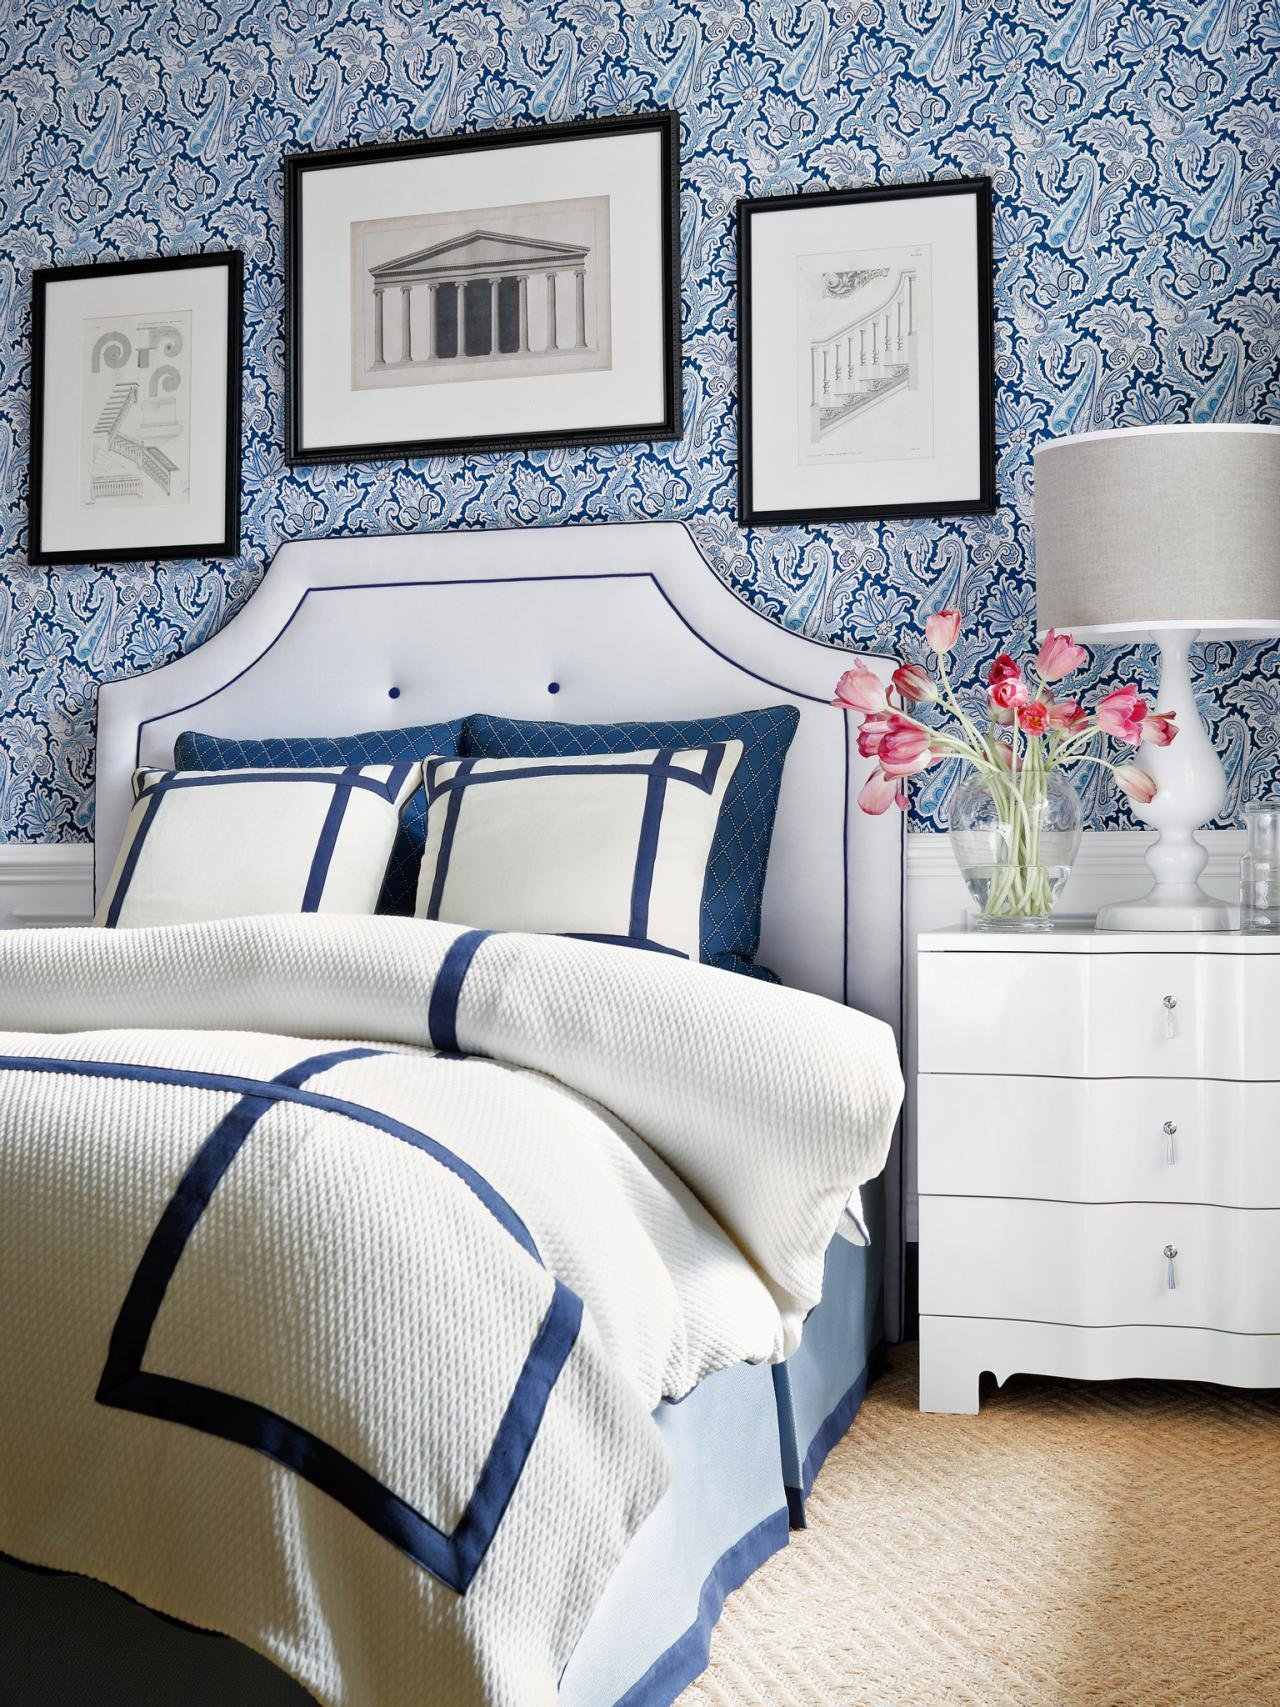 Best Navy Blue And White Bedroom With Paisley Wallpaper Hgtv With Pictures